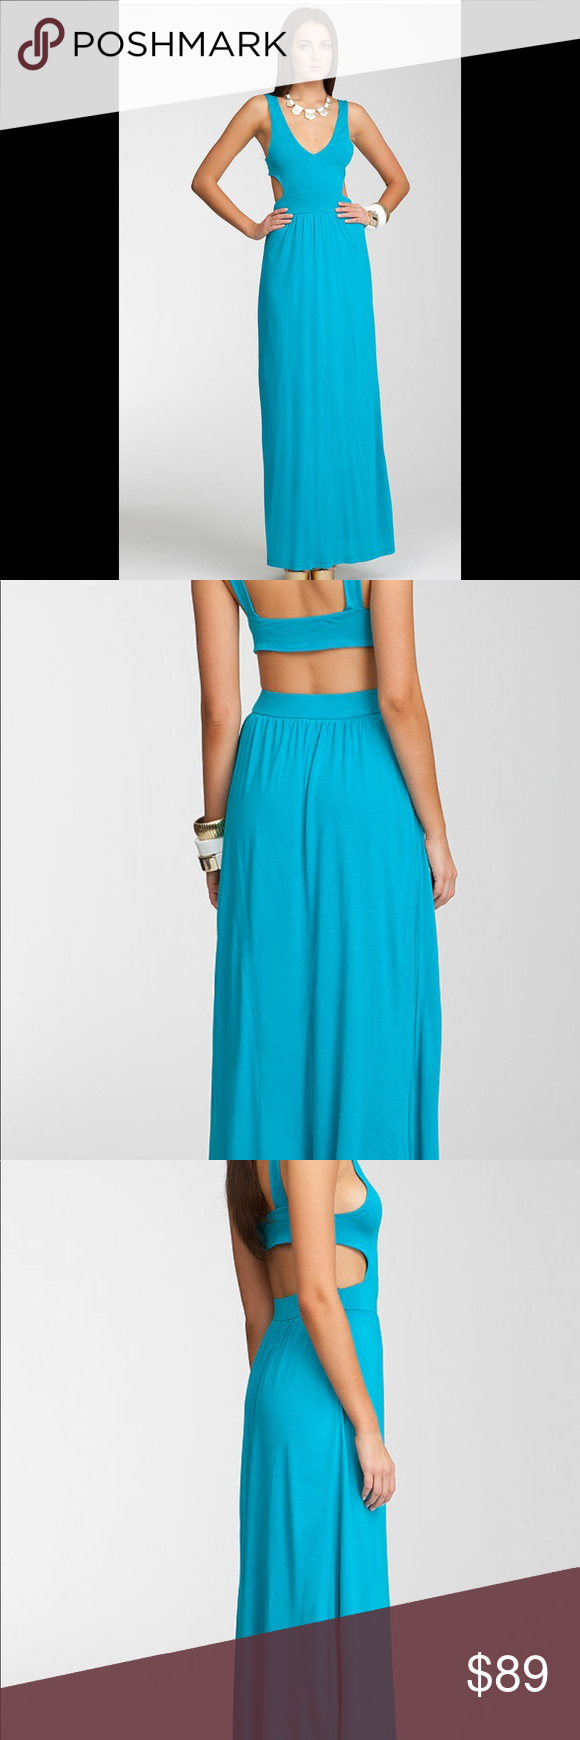 Nwt Bebe Blue Cutout Maci Dress With Back And Side Cutouts Lengthy Drape And Standout Color This Bebe Maxi Dres Cutout Maxi Dress Bebe Maxi Dress Bebe Dresses [ 1740 x 580 Pixel ]